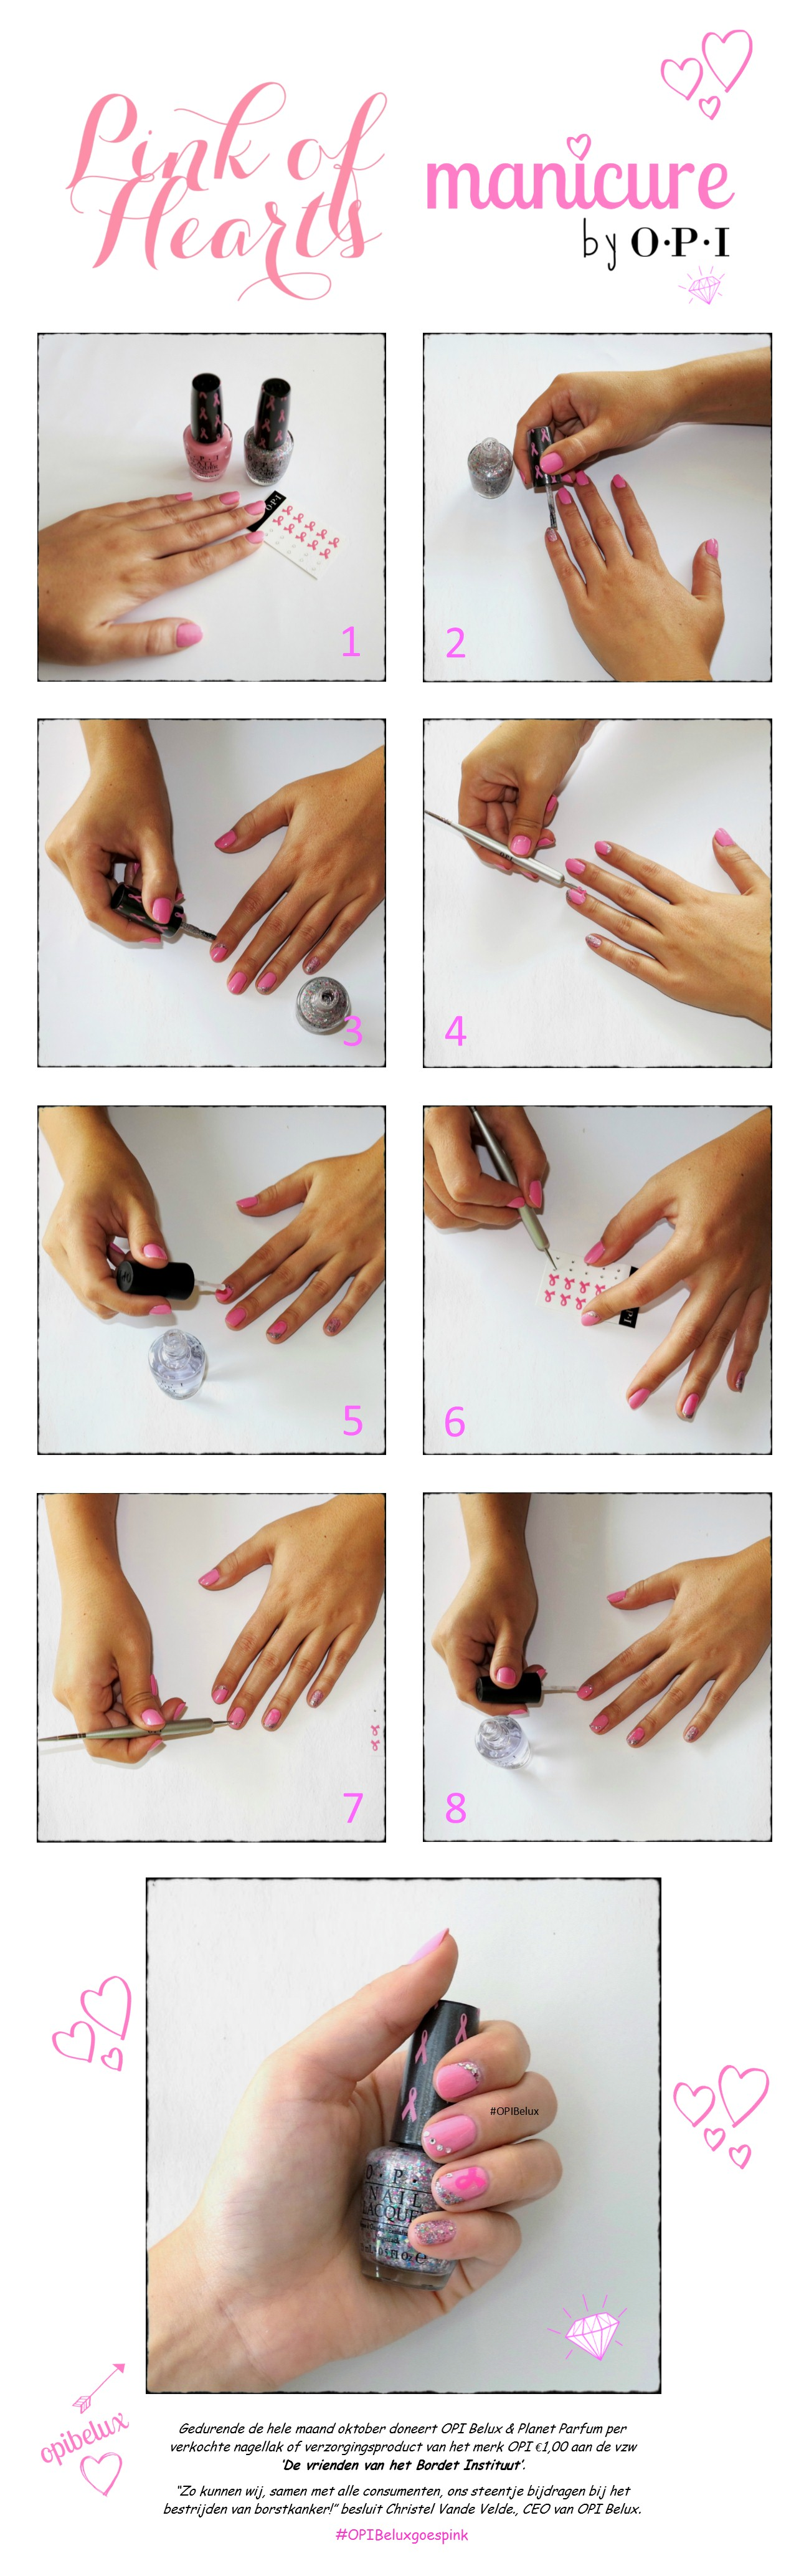 Pink Of Hearts Manicure NL